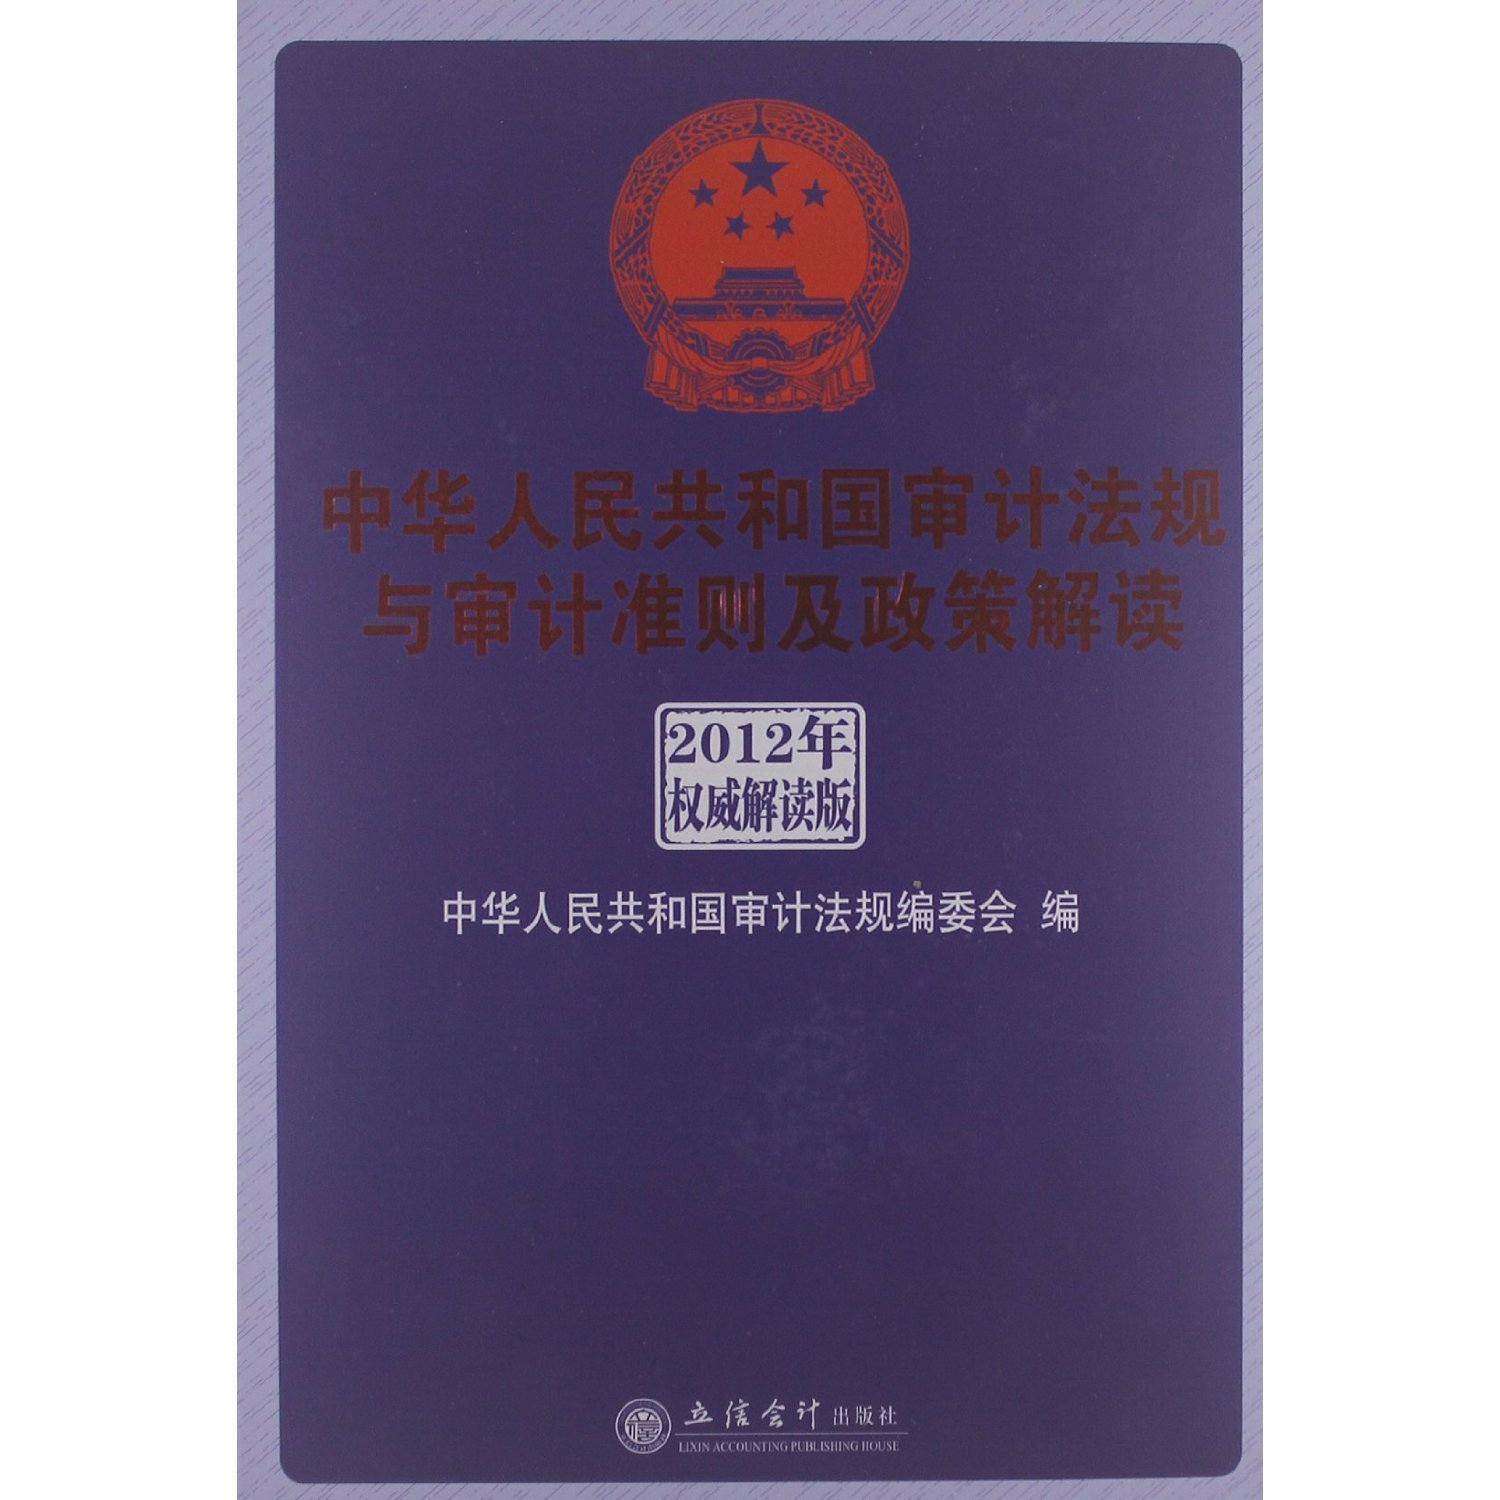 Readings on Audit Law and Standard of the People's Republic of China-2012 authority version (Chinese Edition) PDF